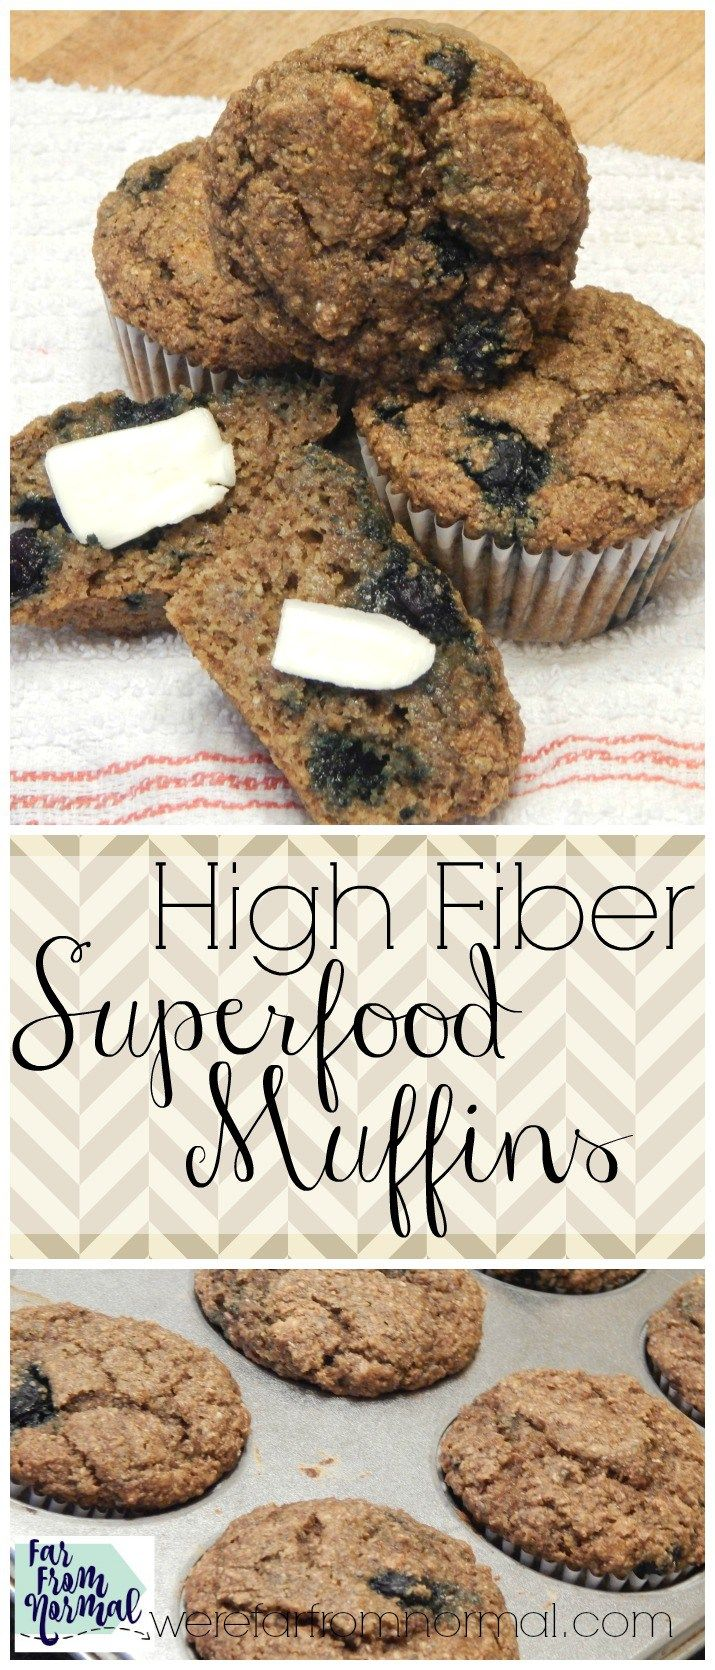 These are not your grandma's bran muffins! Packed with superfoods like blueberries, chia seeds and flax these are as delicious as they are healthy!